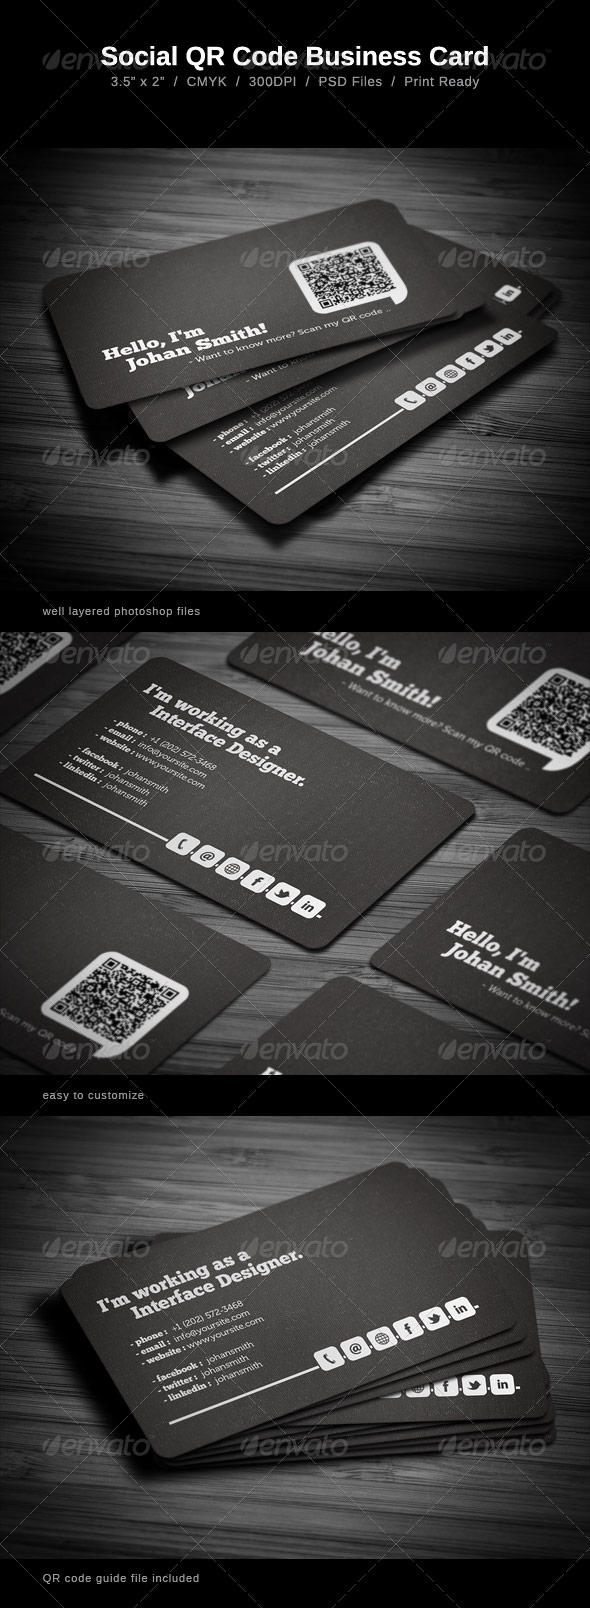 5 noteworthy back of business cards ideas business card qr back of card template reheart Choice Image